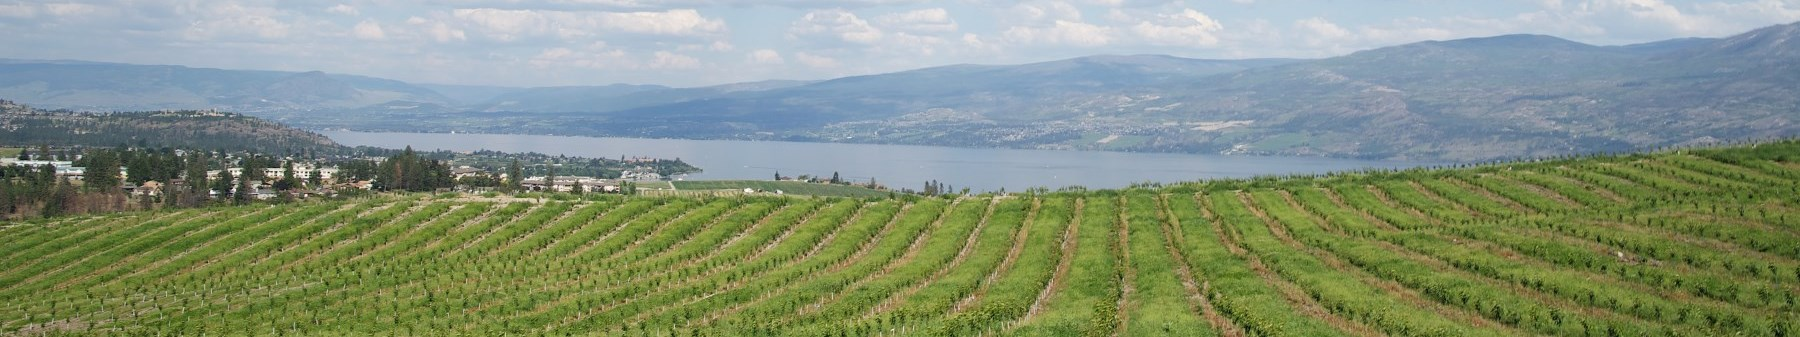 West Kelowna View from Glen Canyon D-Hull Image